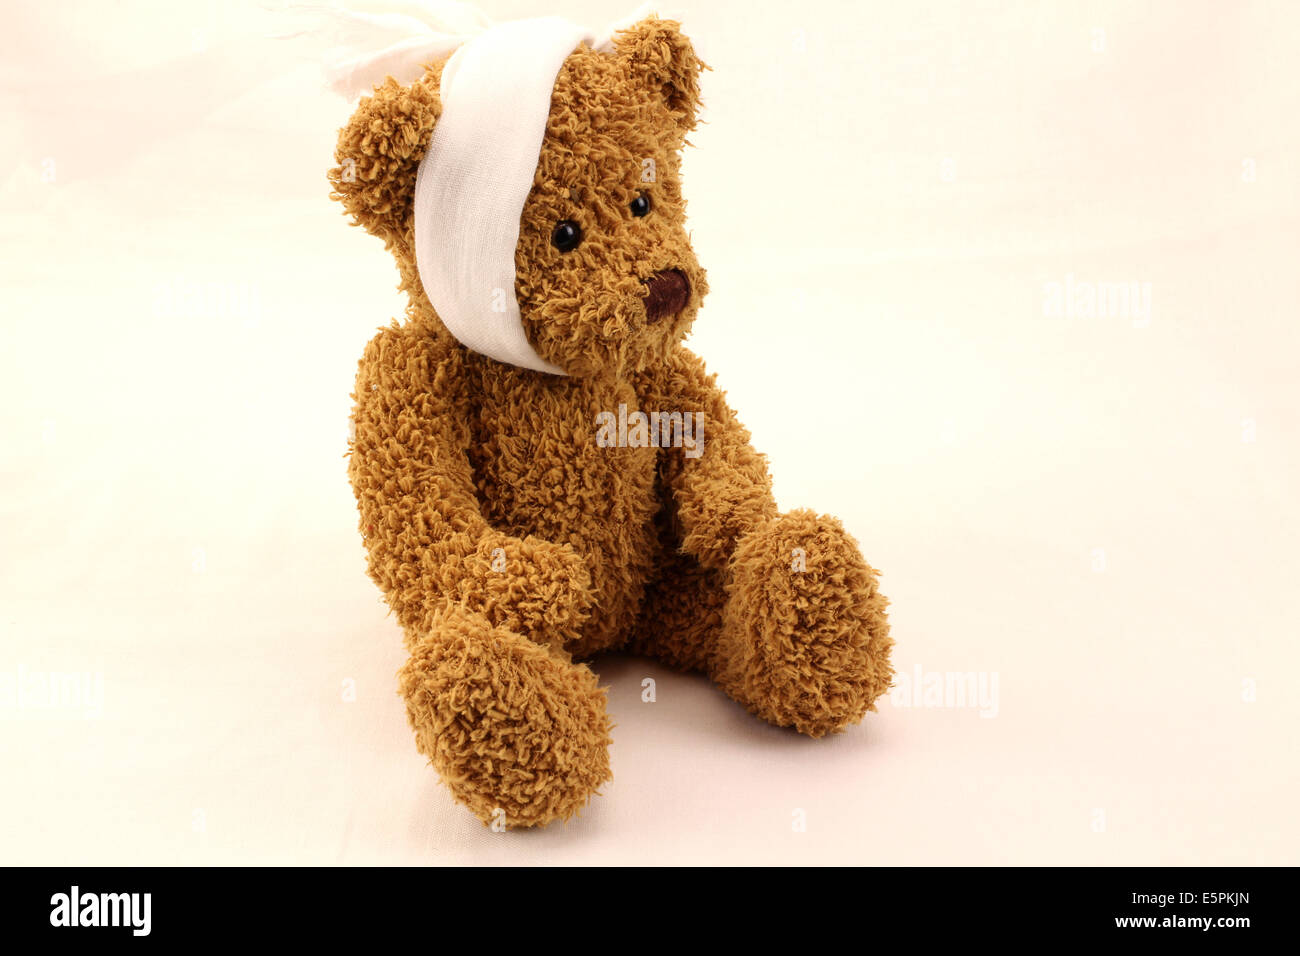 Cute bear toy with toothache bandage on a white background - Stock Image